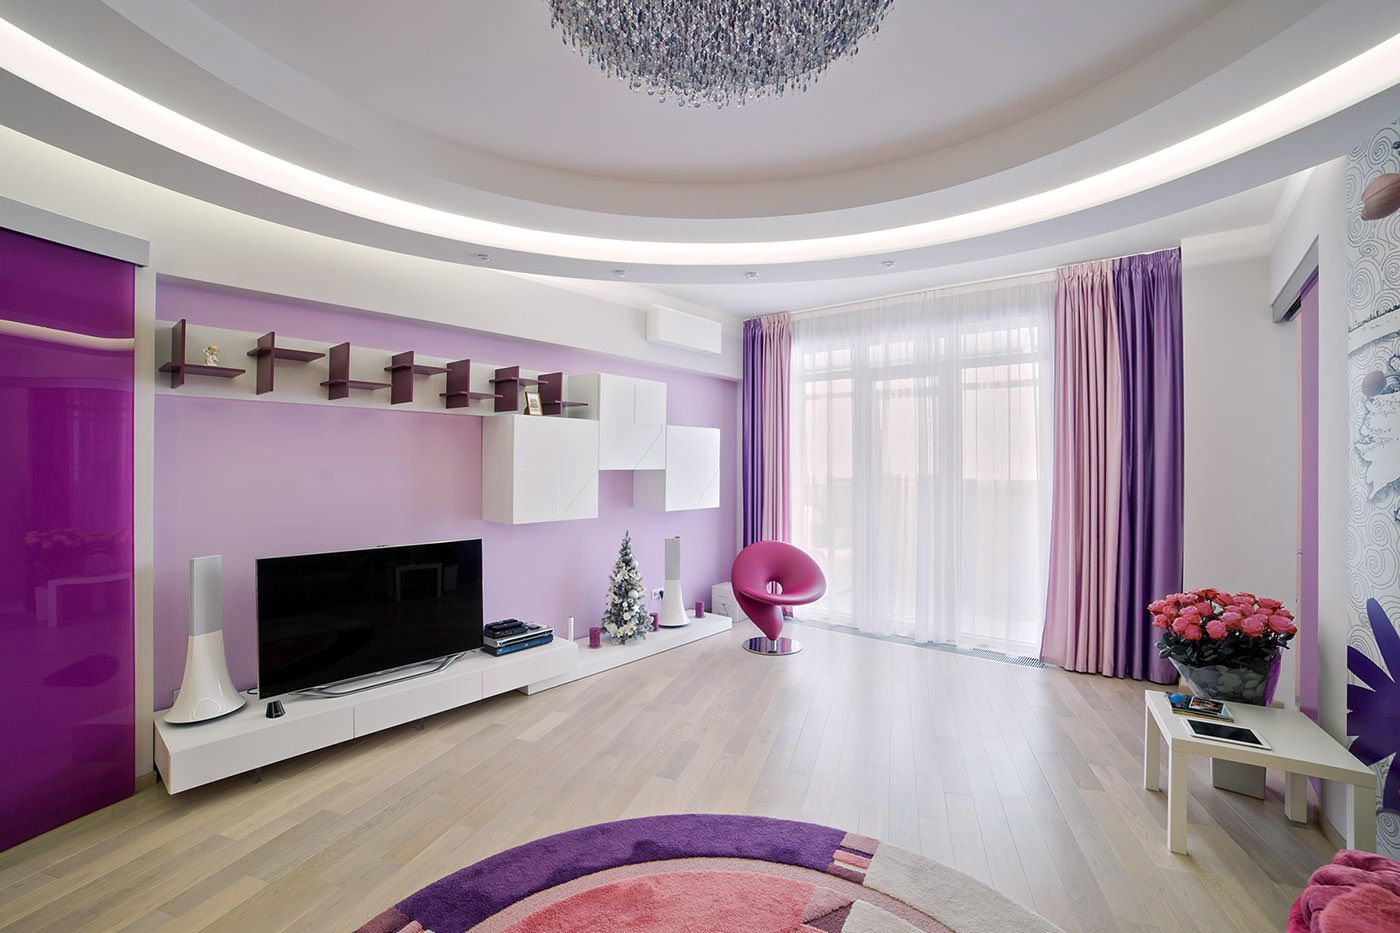 Lilac Colored Living Room: Fresh Design Ideas. Spacious modern interior with large TV